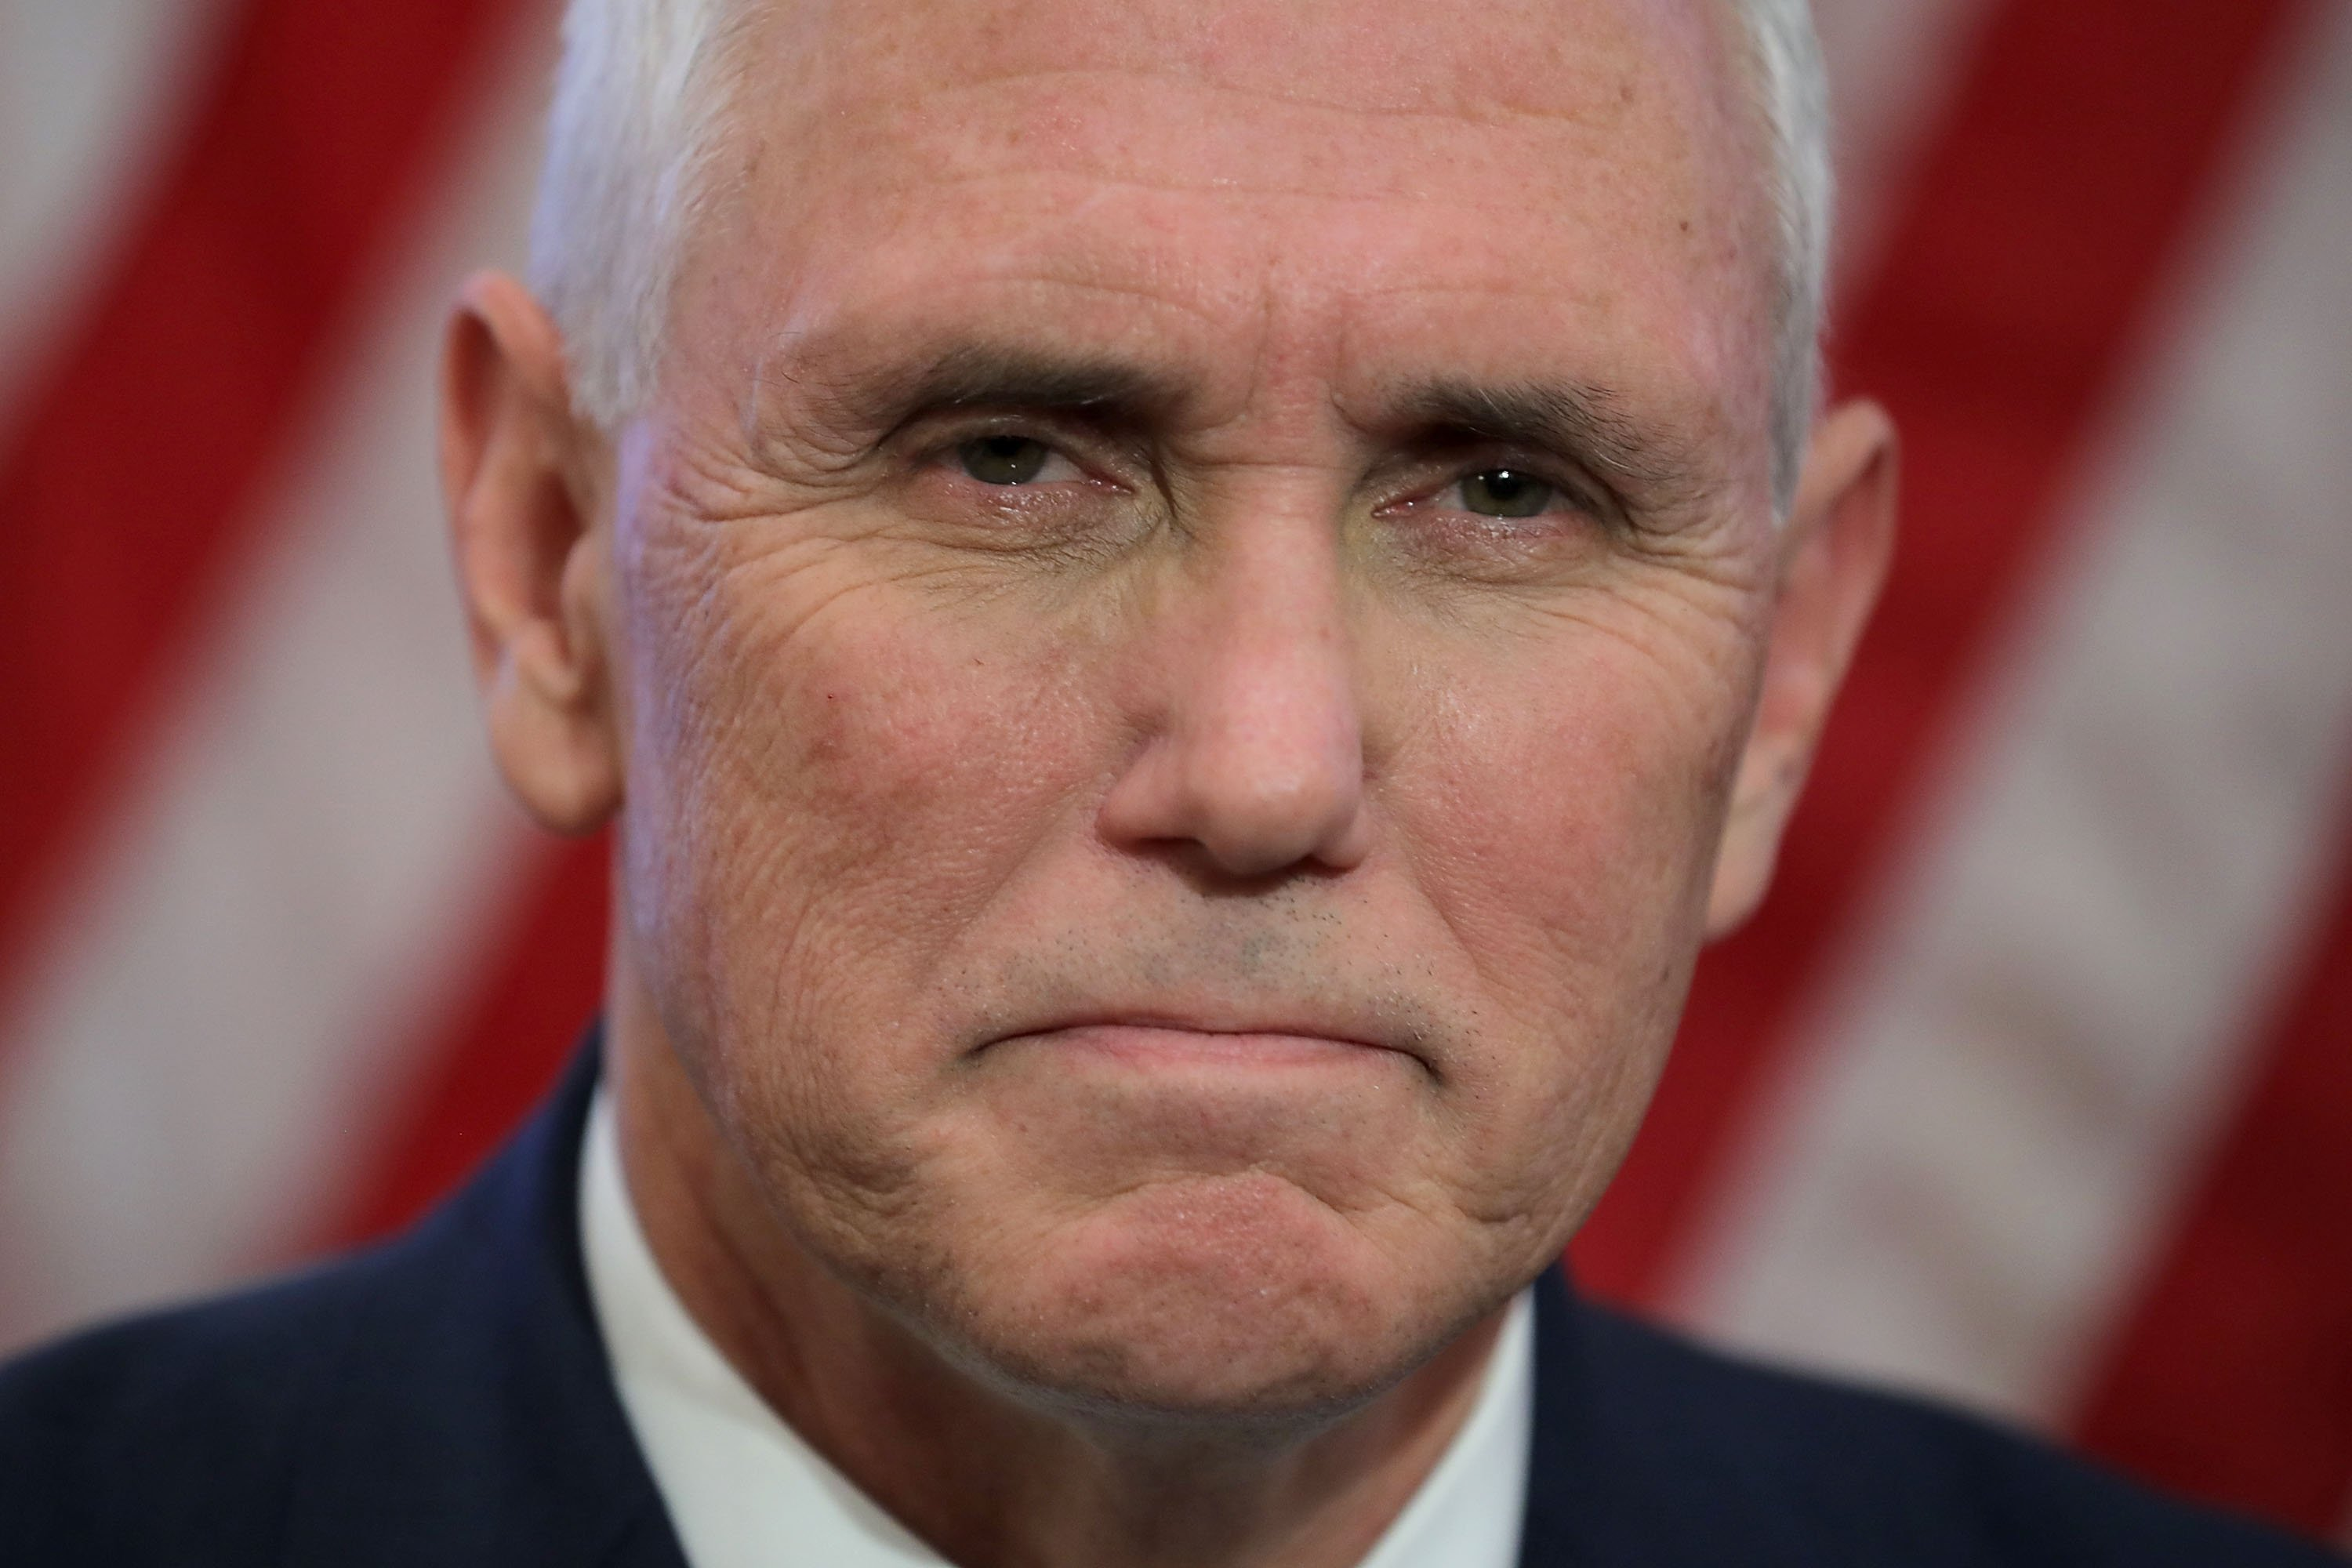 Sondland testimony raises questions about Pence's denials on Ukraine